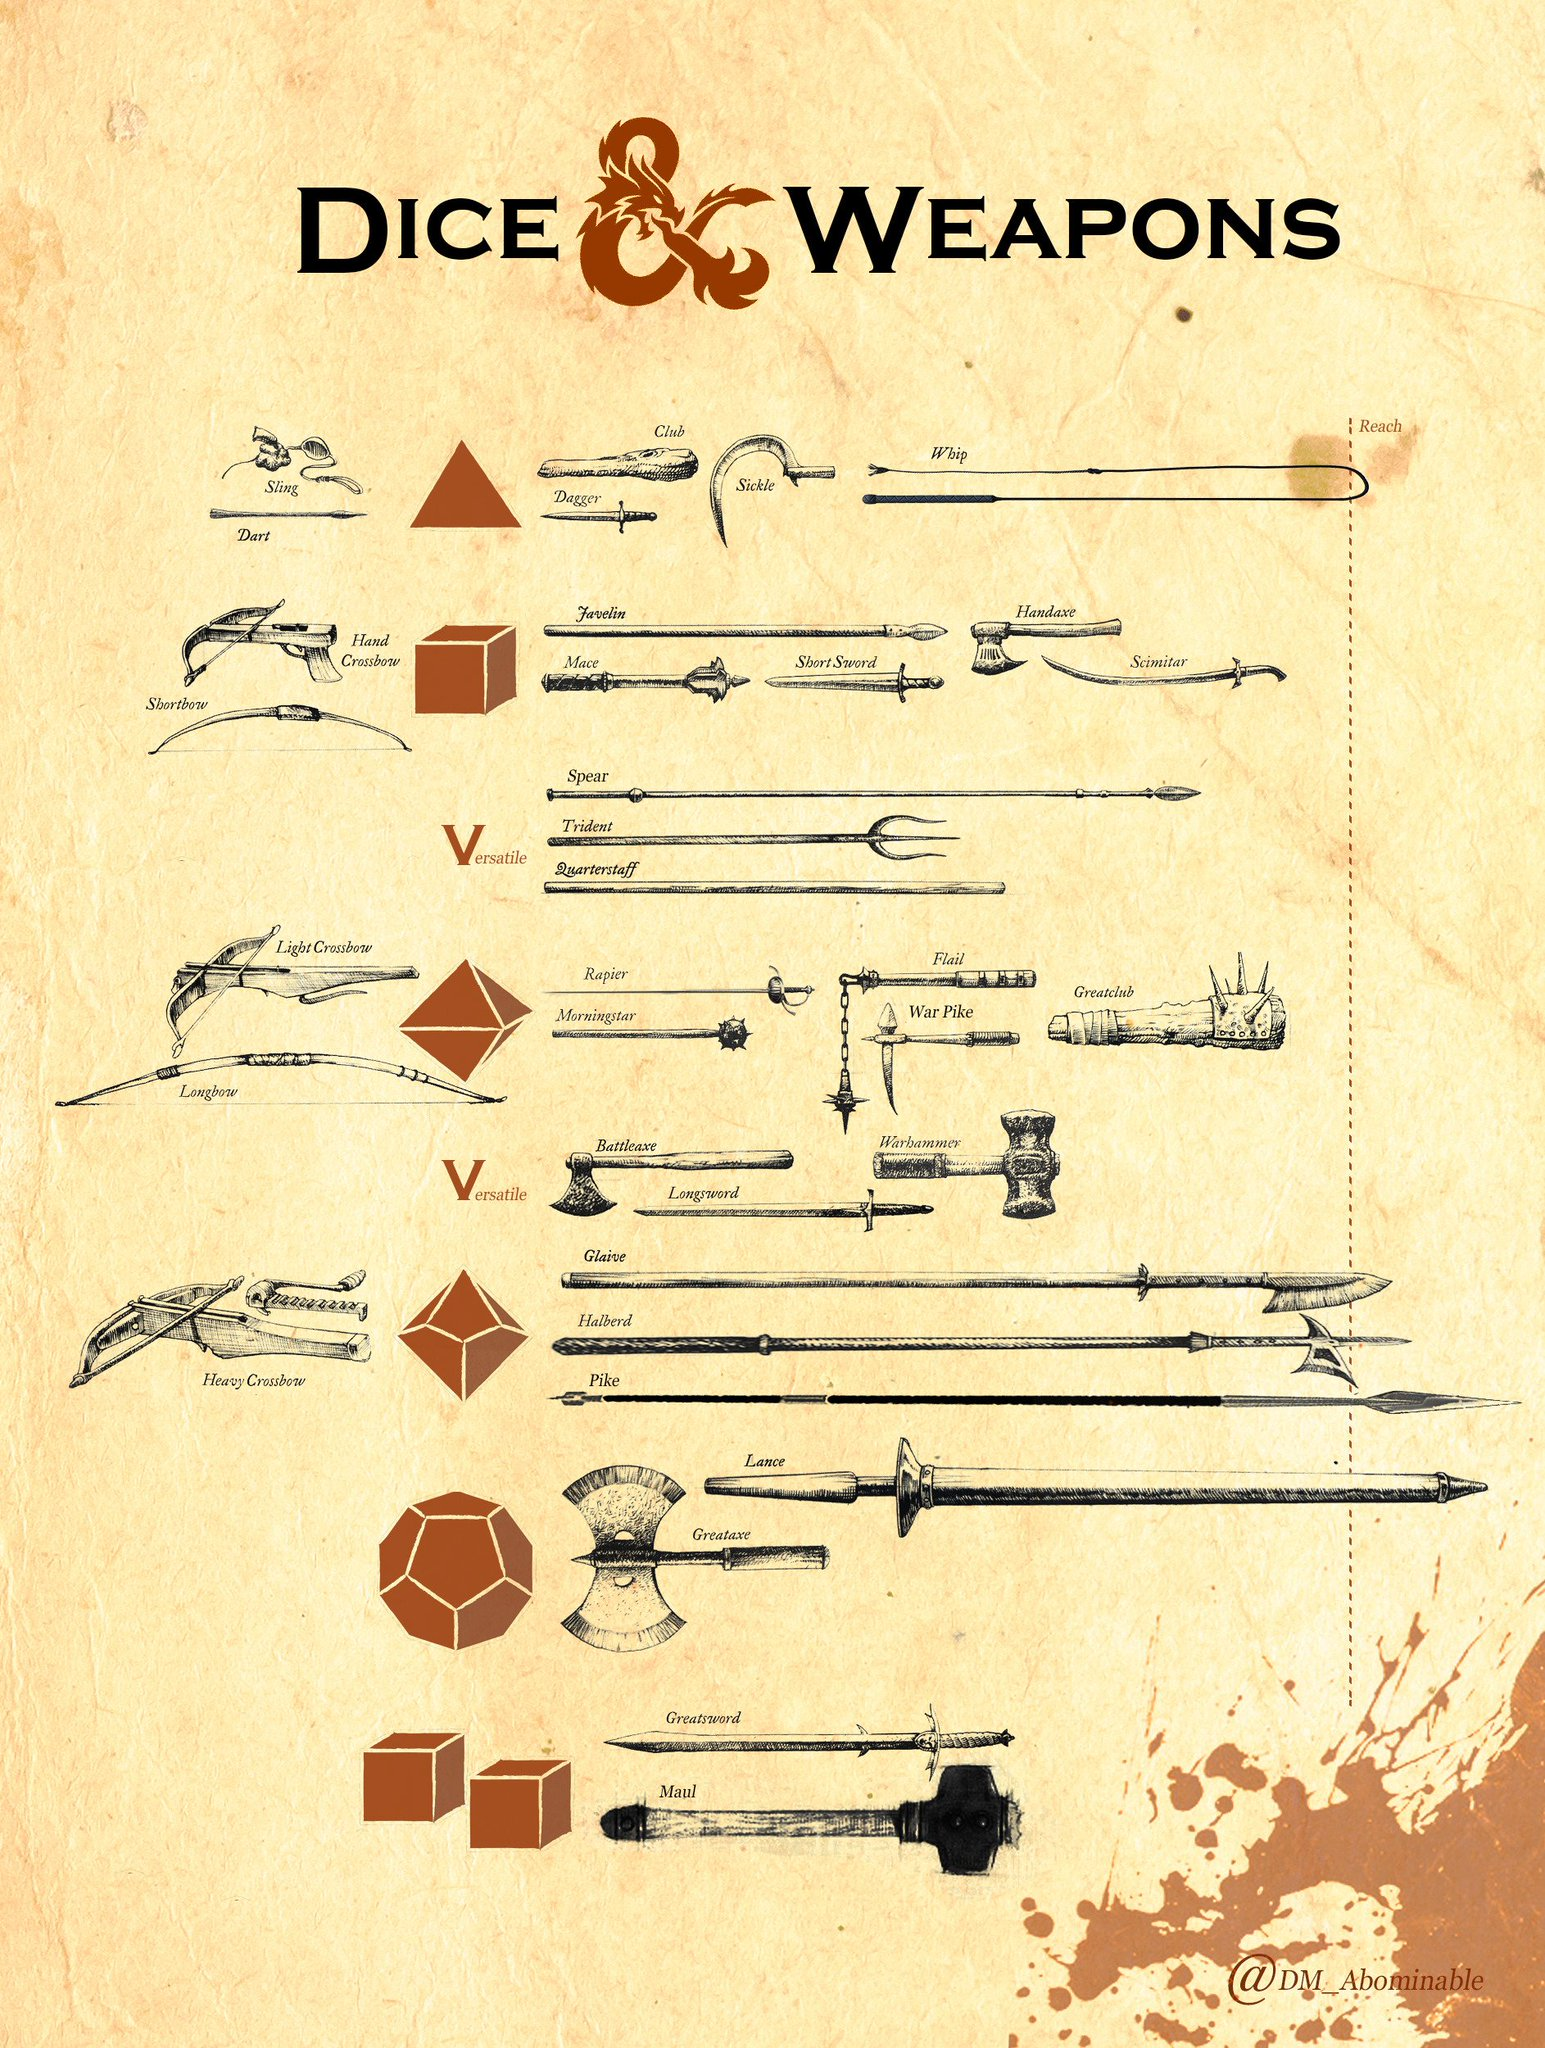 Crocheteur On Twitter Dice Weapons I Just Created This Table To Help Dms And Myself In The Handling Of Weapons Feel The Power Of Your Dice Dnd Dnd5e Dmtip Https T Co Qg3rmqoti4